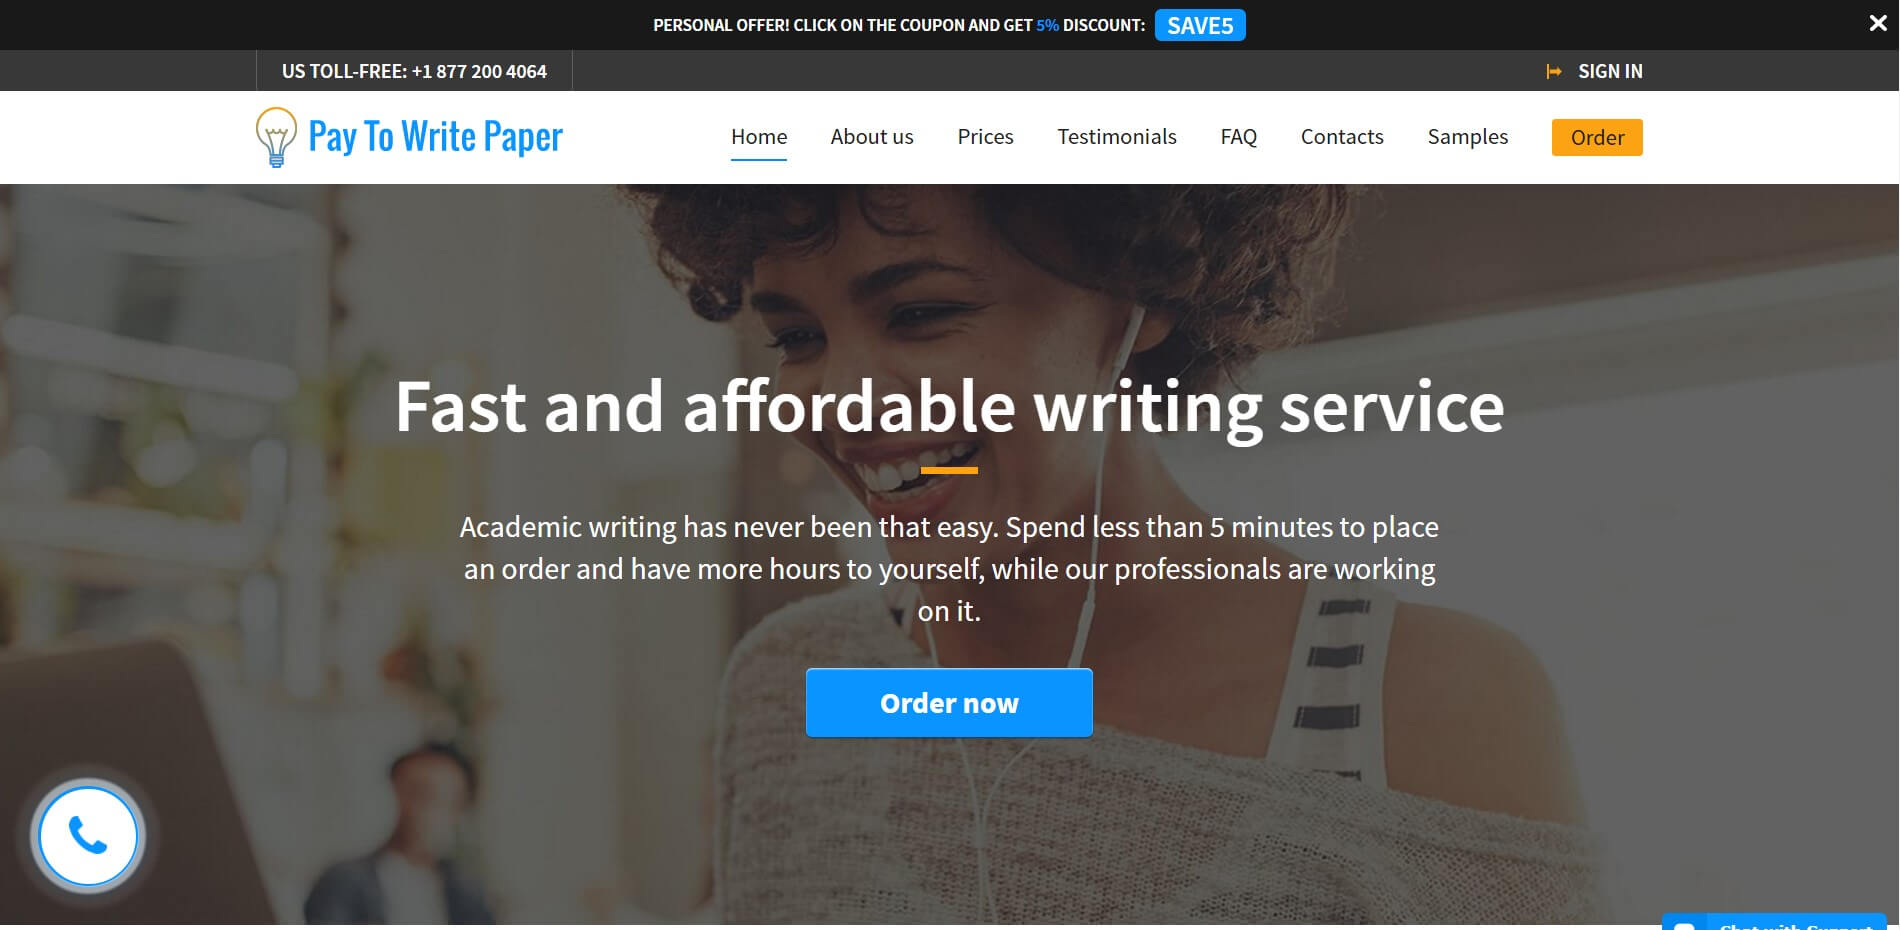 paytowritepaper.com review